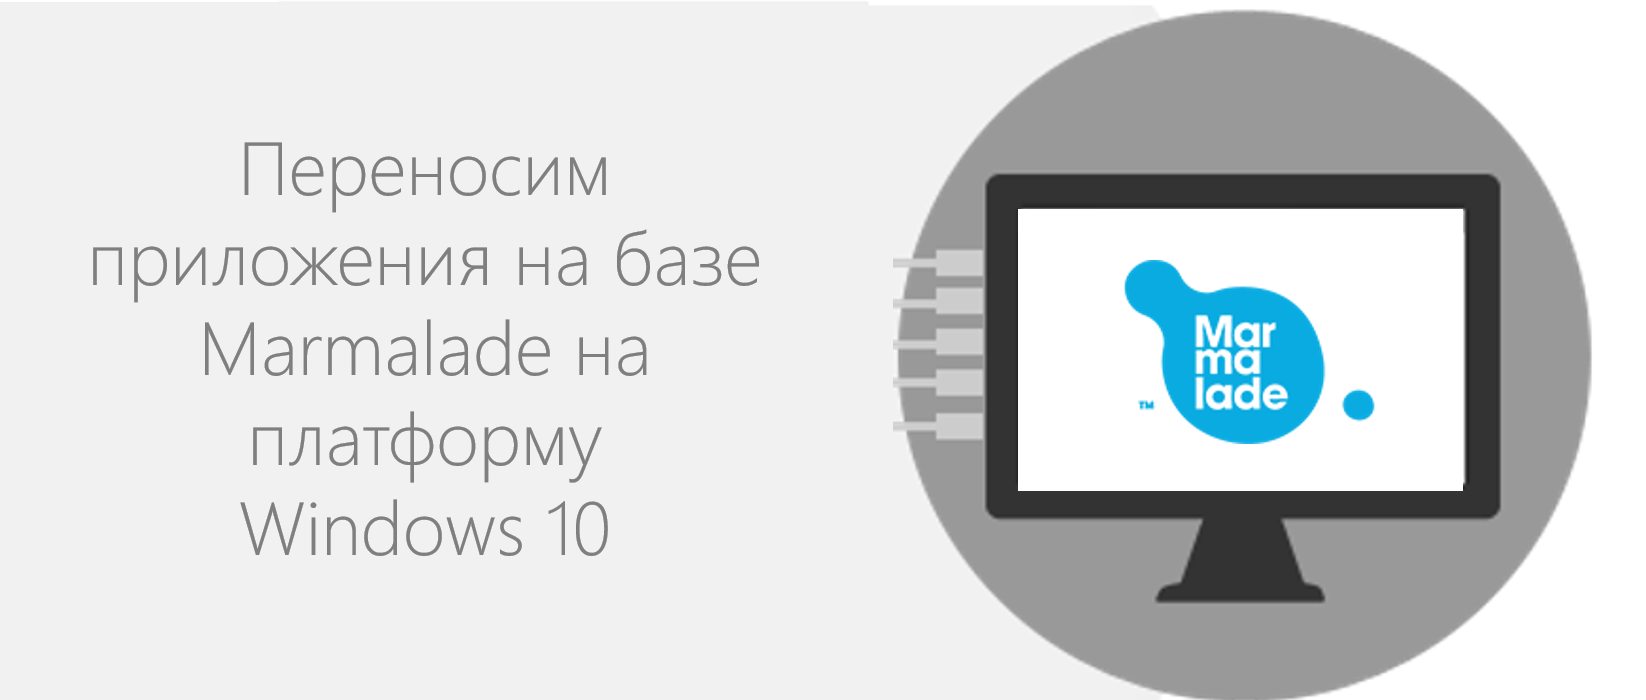 ... of applications on the basis of Marmalade on the Windows 10 platform